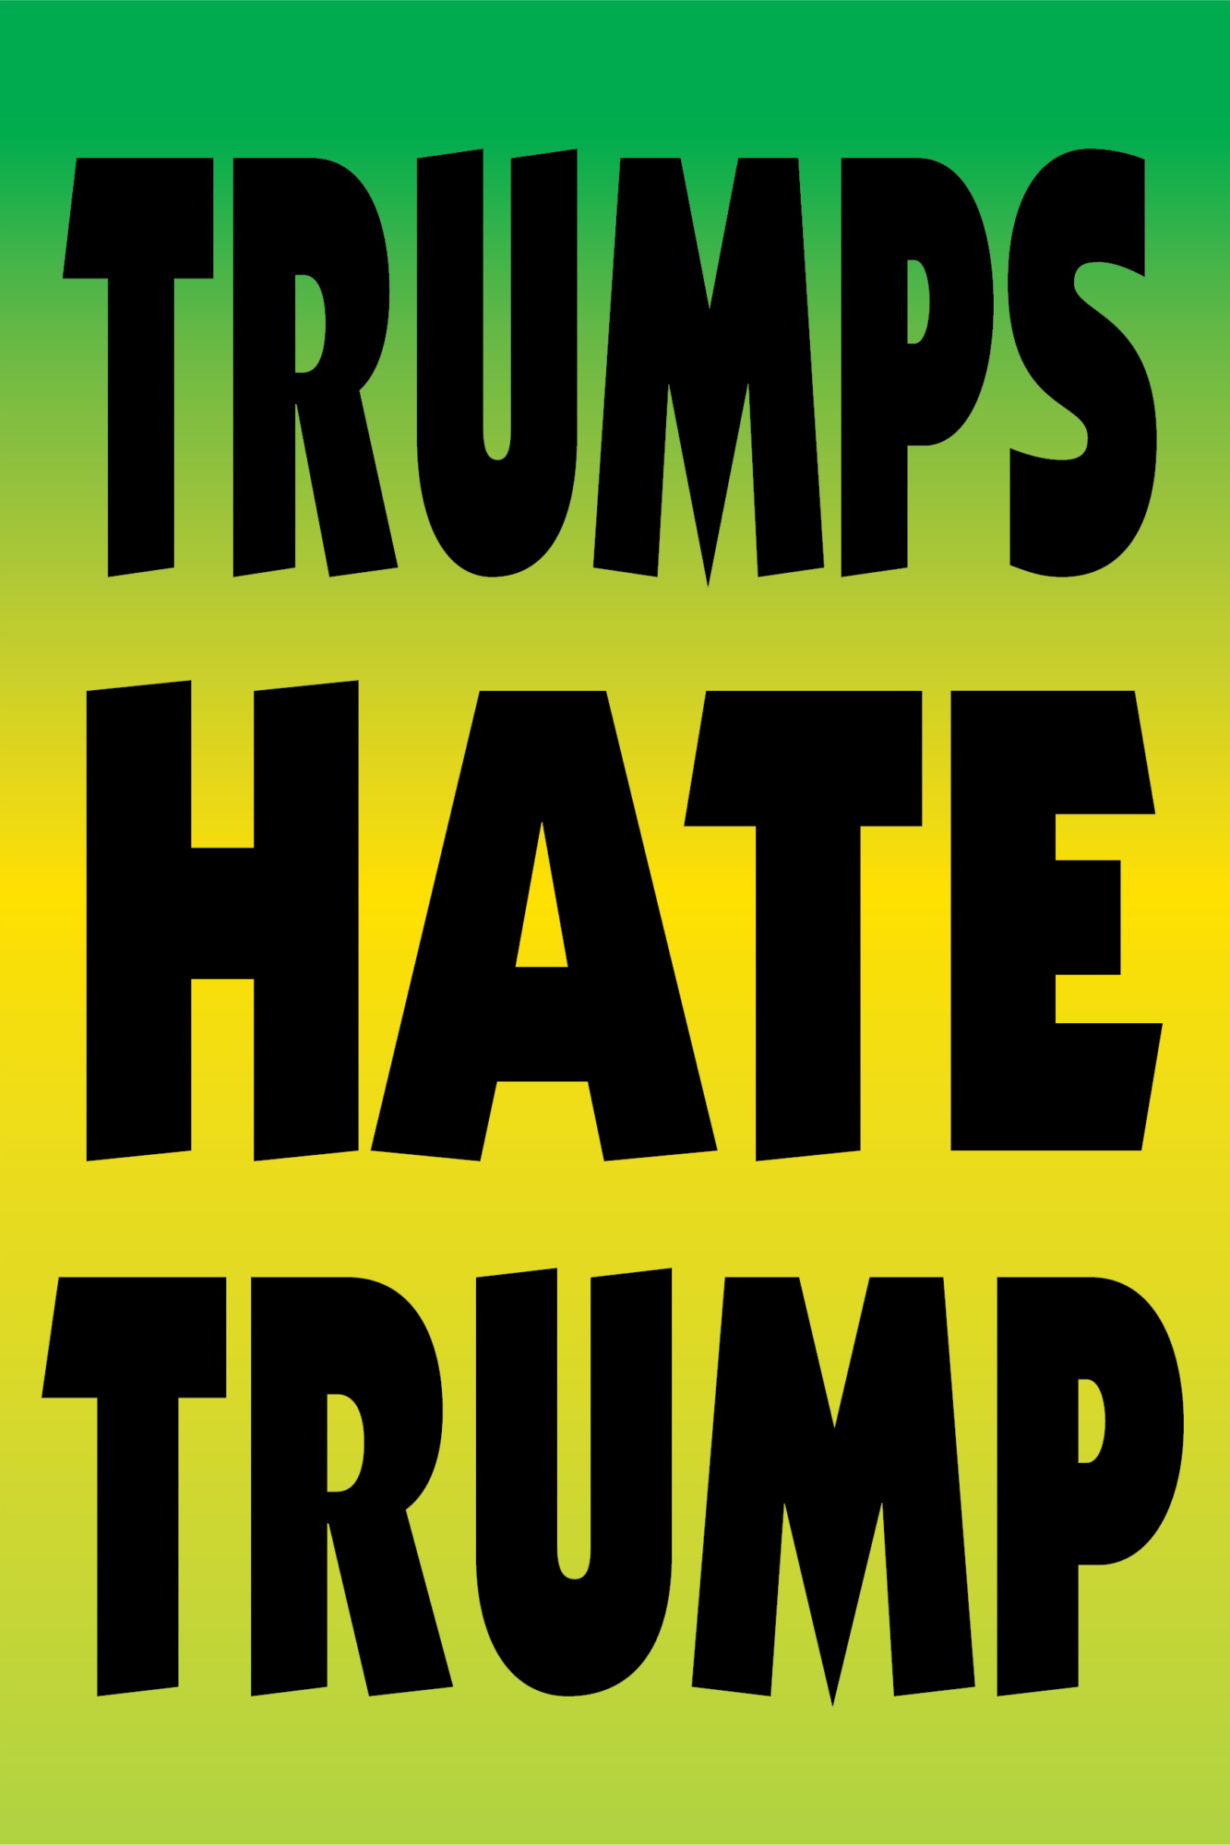 NP_76_100_2017_Trumps-Hate-Trump.jpg